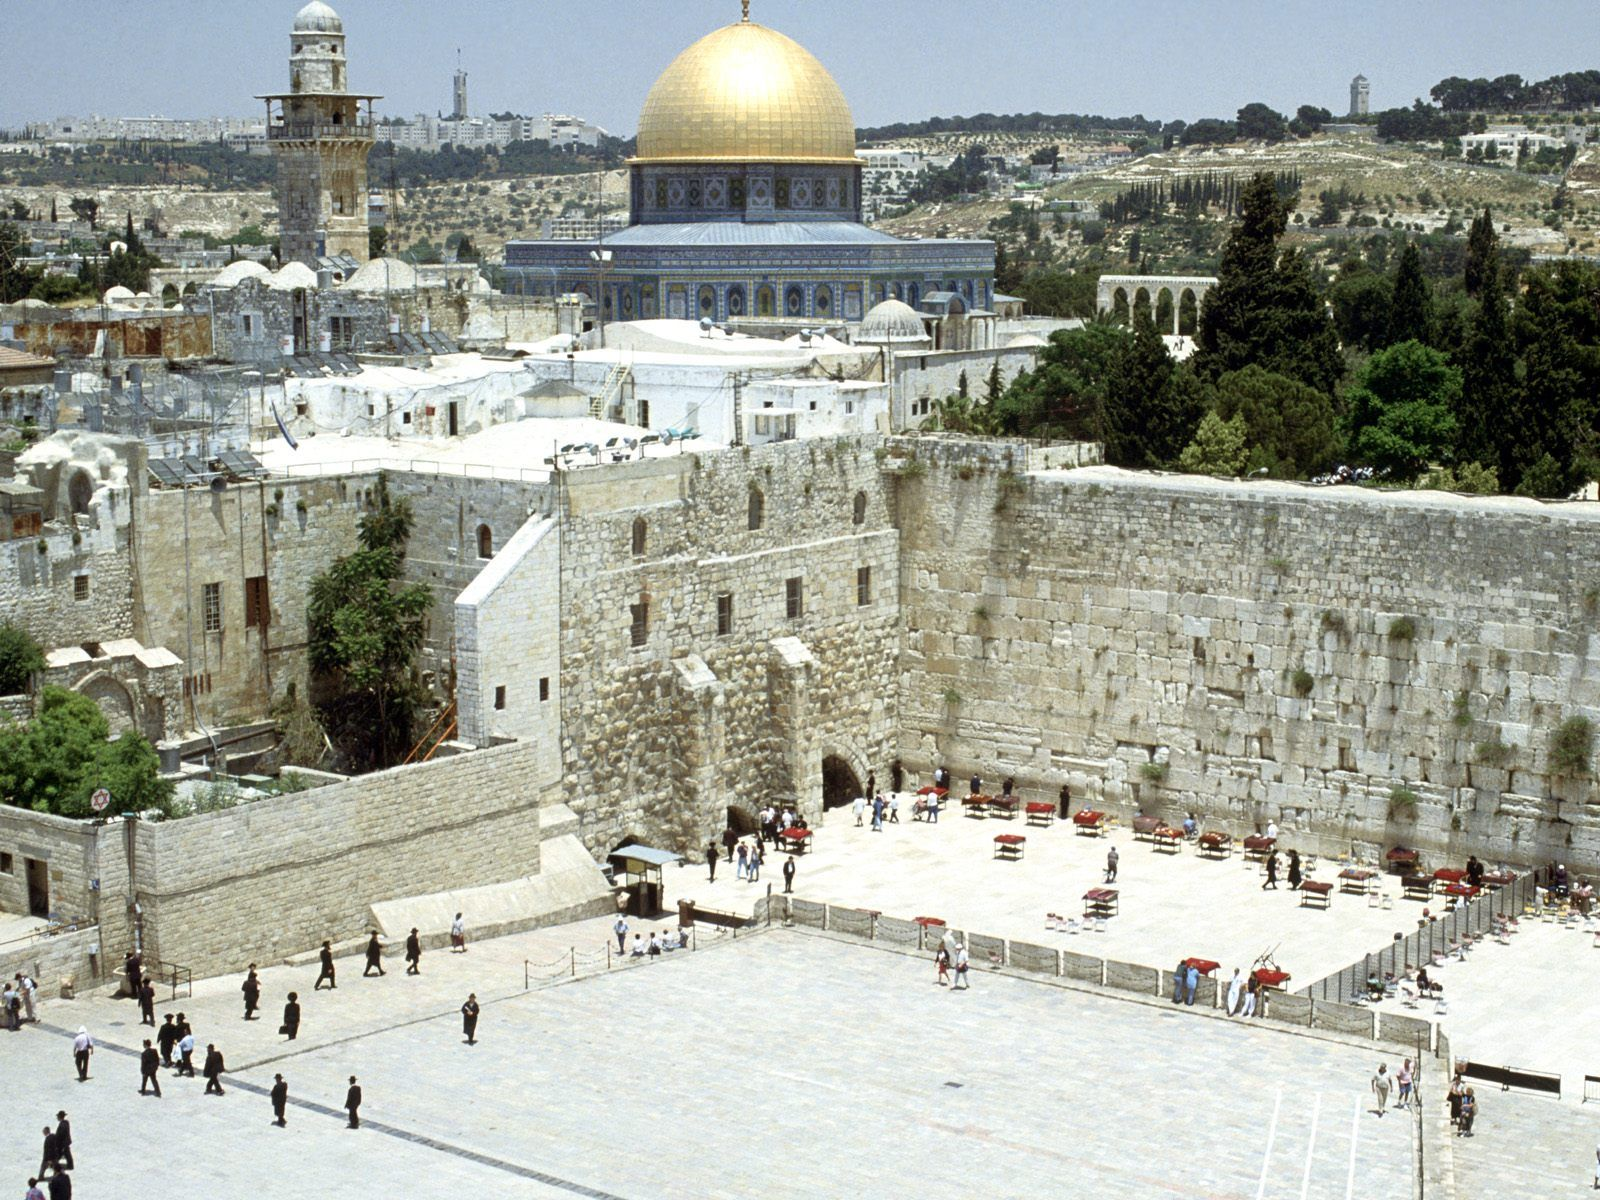 1600x1200 WESTERN WALL AND OMAR MOSQUE JERUSALEM ISRAEL WALLPAPER ...